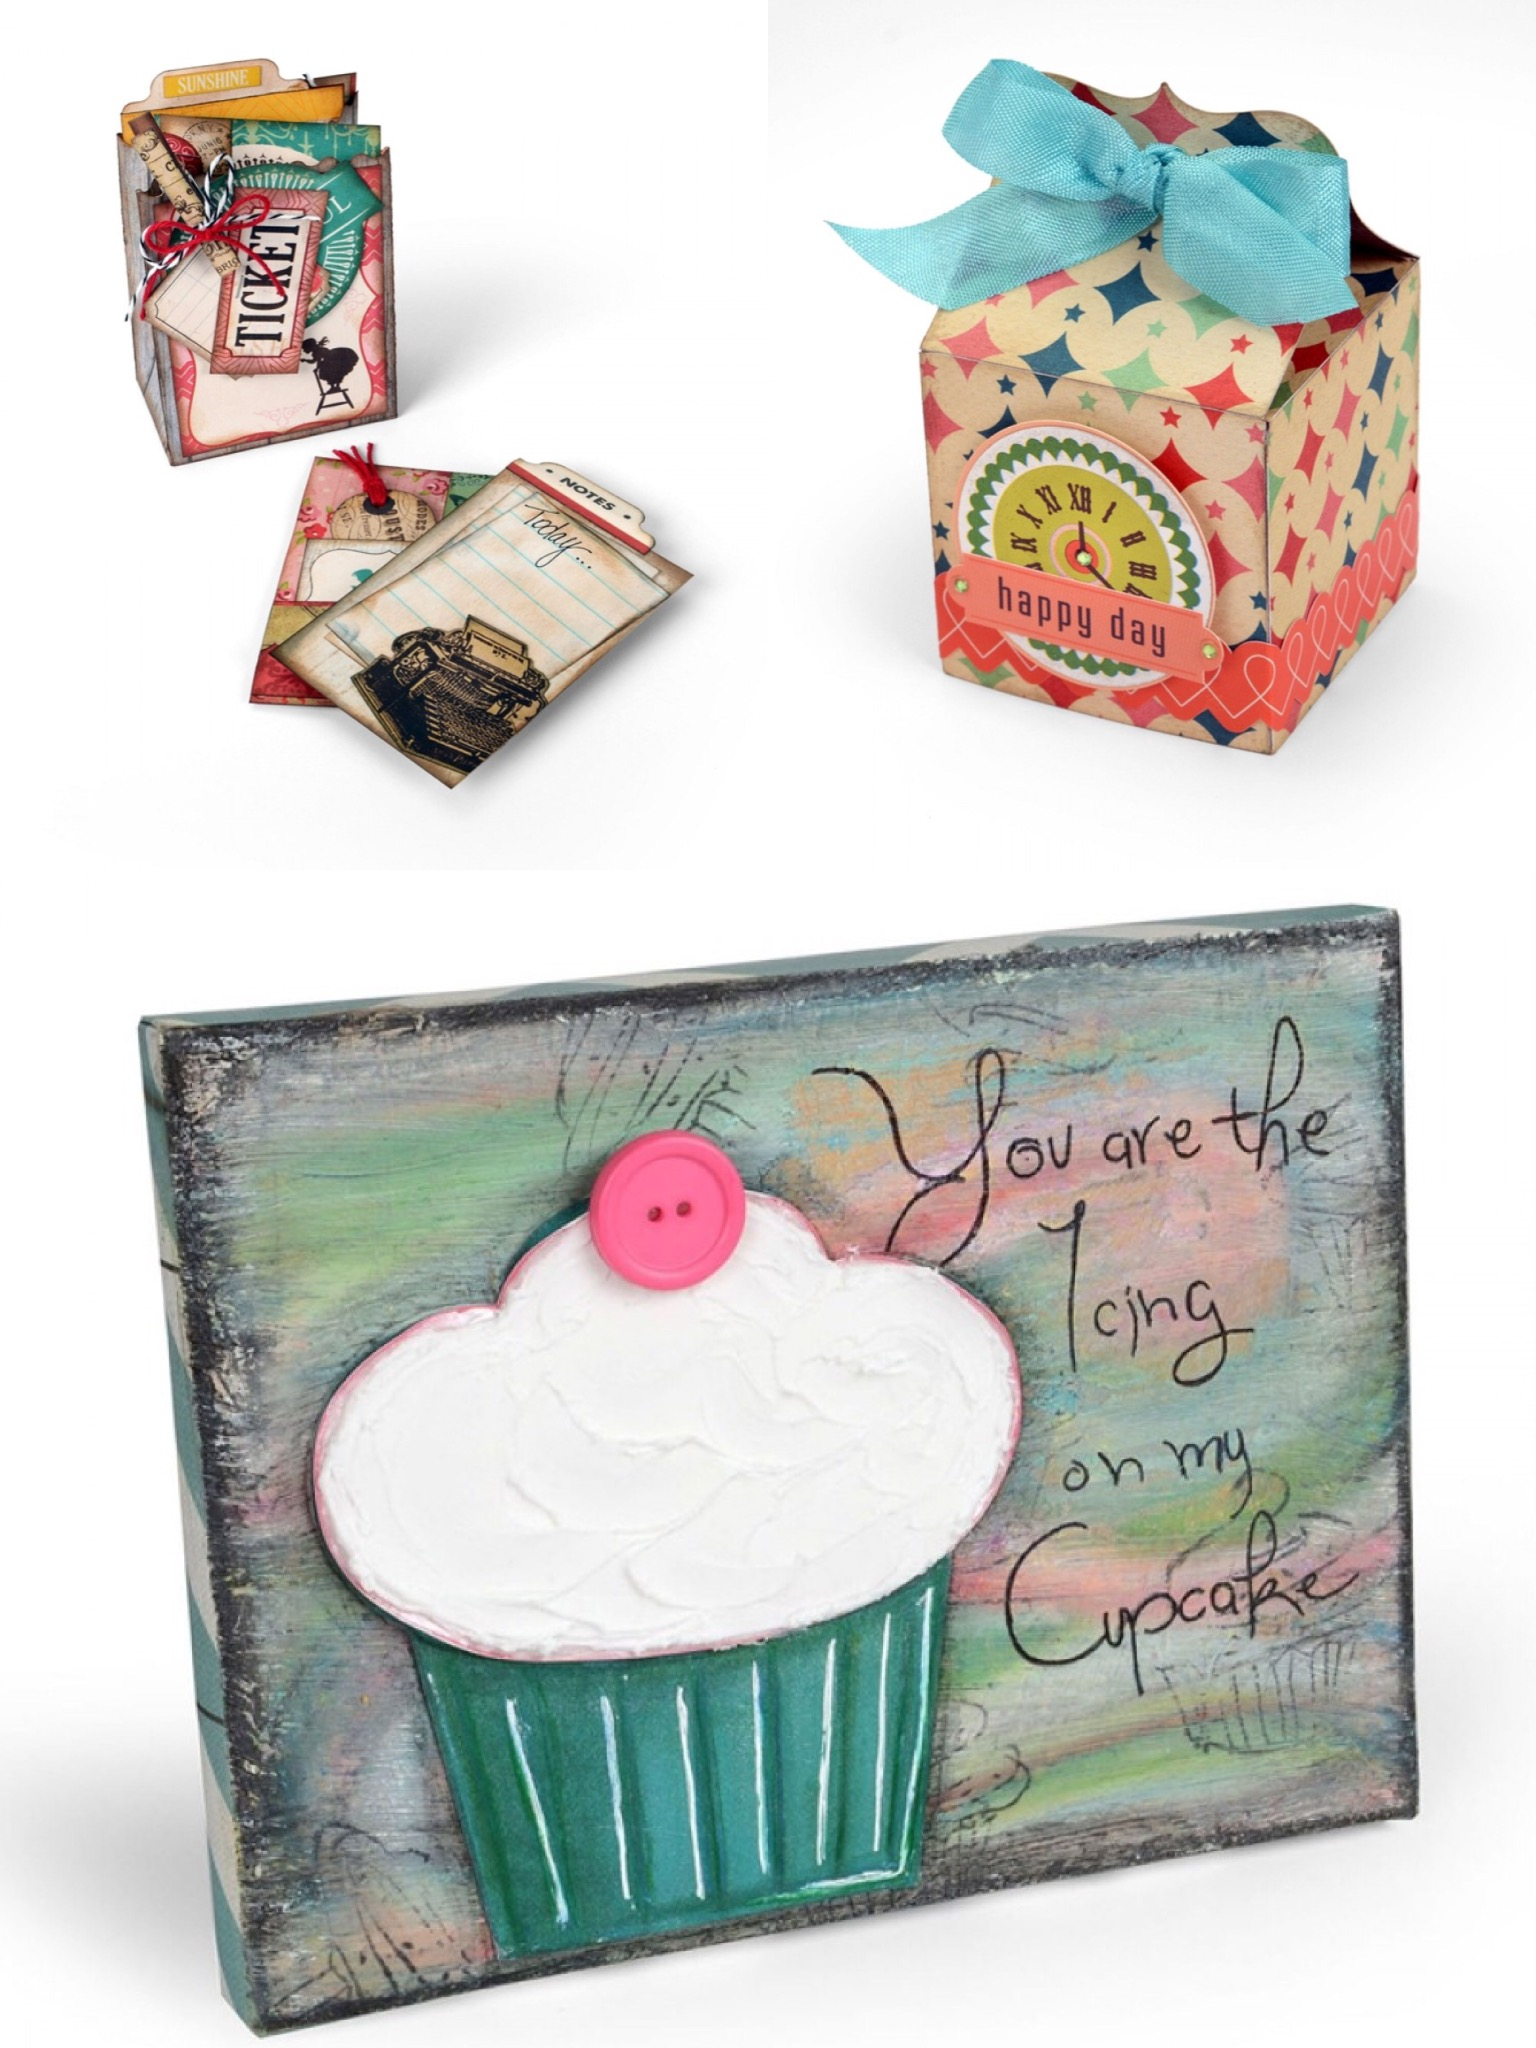 Now Available At Sizzix.com: Lori Whitlock's New Collection